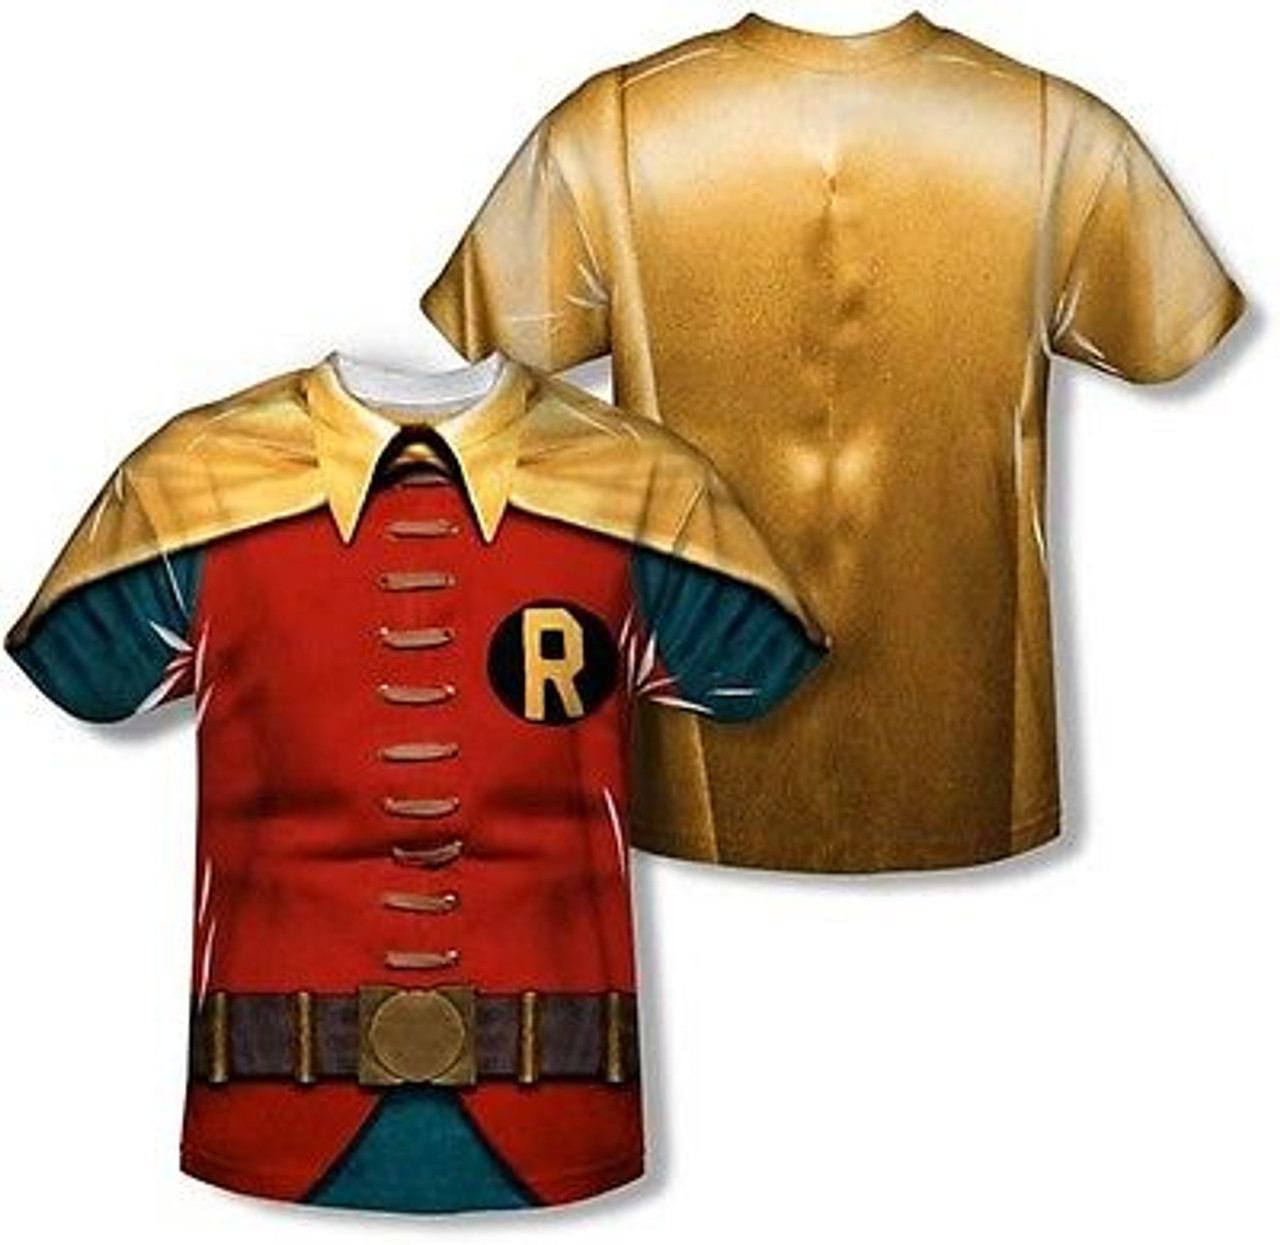 cc58124f6 Robin Classic Batman Tv Sublimation Comics Costume Polyester 2 Sided Shirt  S-3Xl